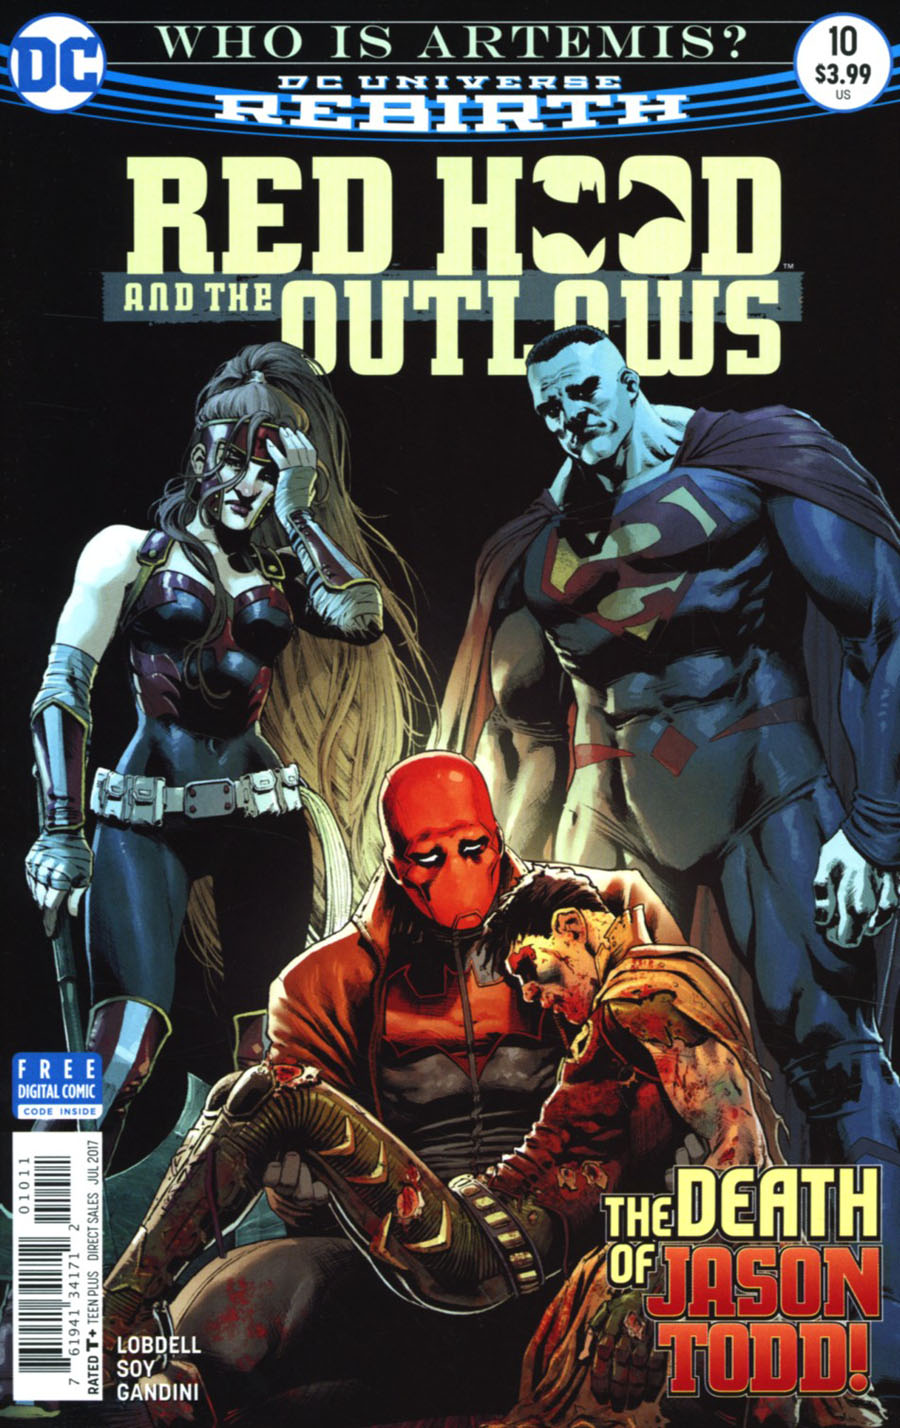 Red Hood And The Outlaws Vol 2 #10 Cover A Regular Nicola Scott Cover